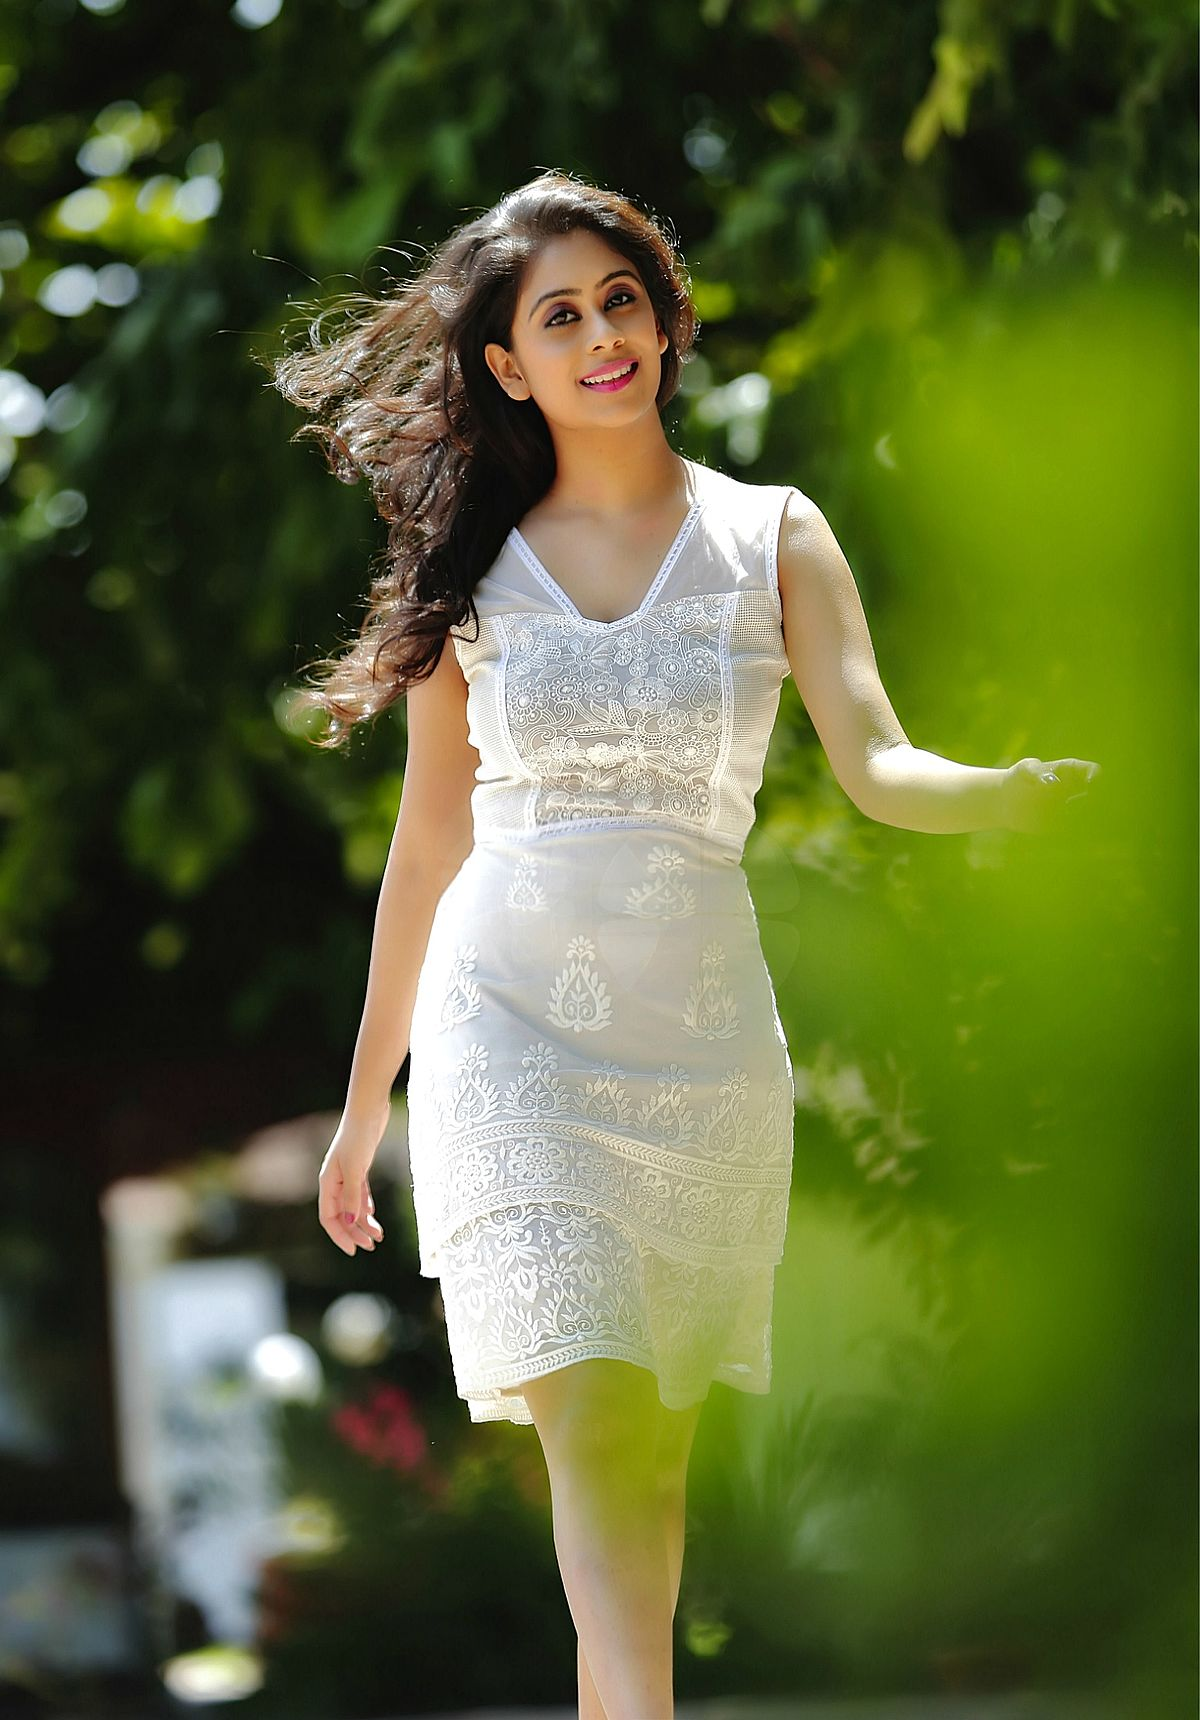 Priya lal white dress pictures